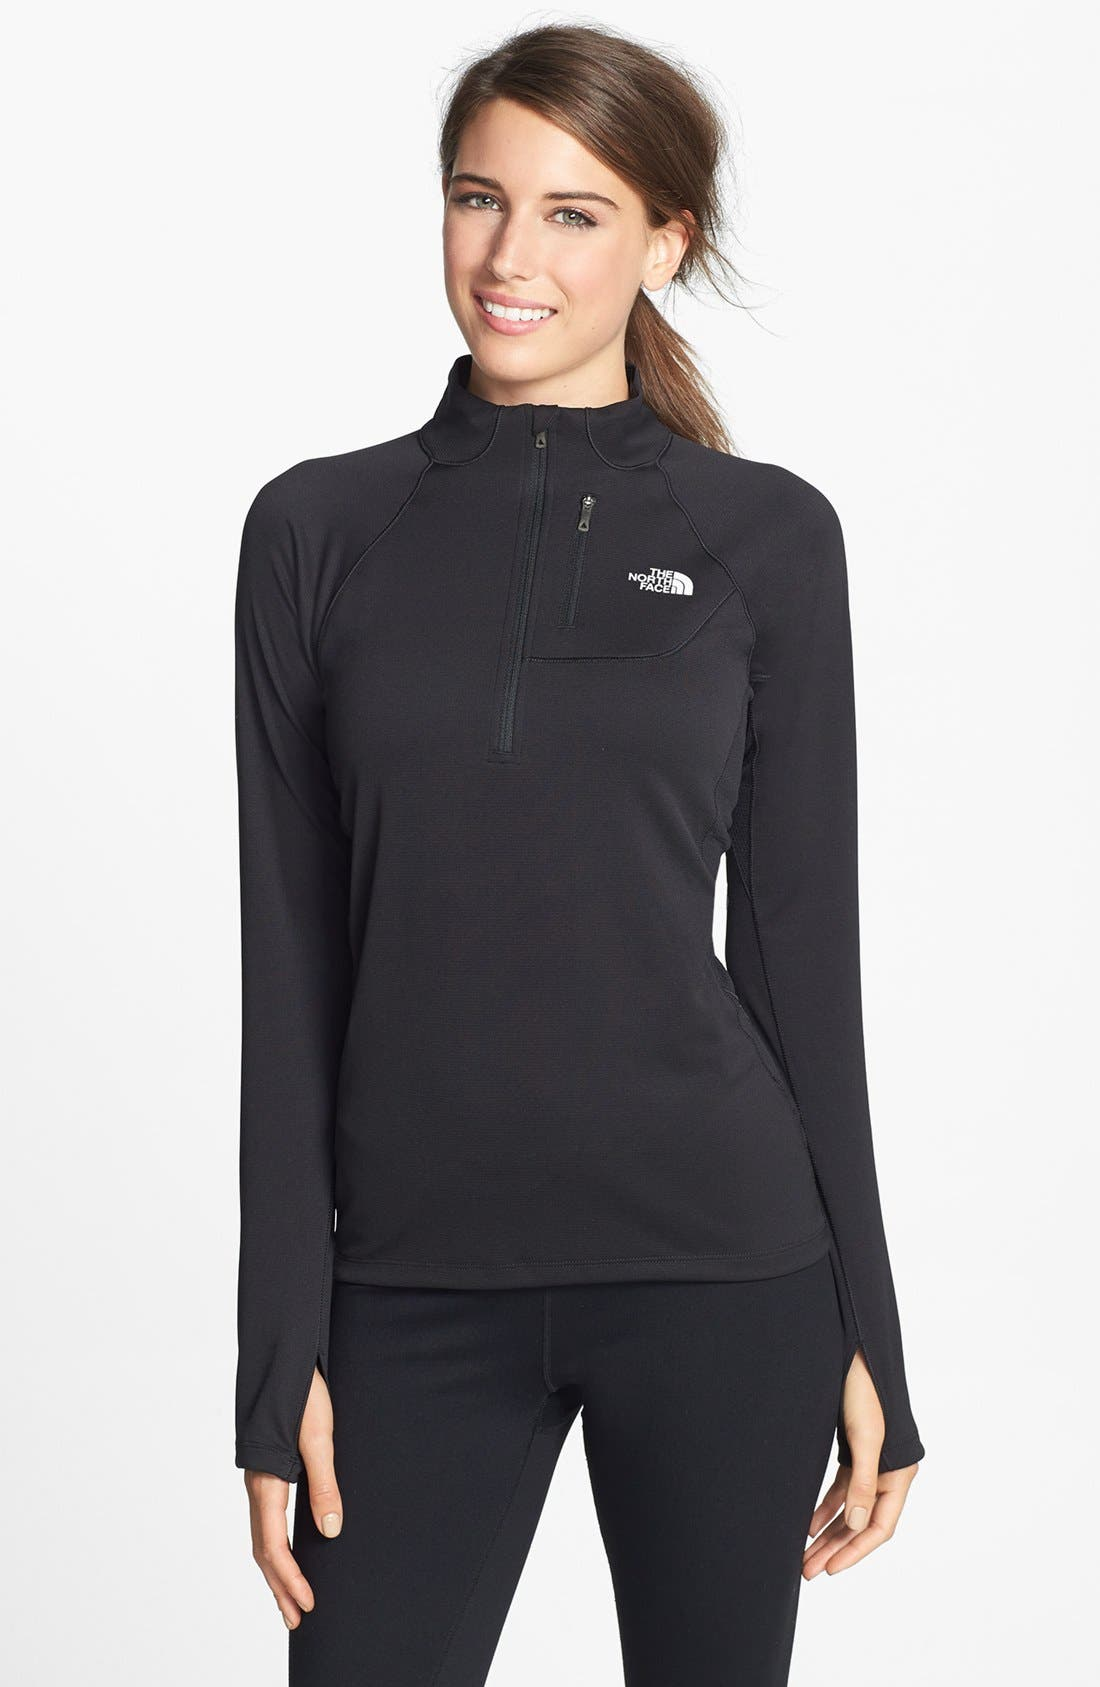 Alternate Image 1 Selected - The North Face 'Impulse Active' Quarter Zip Top